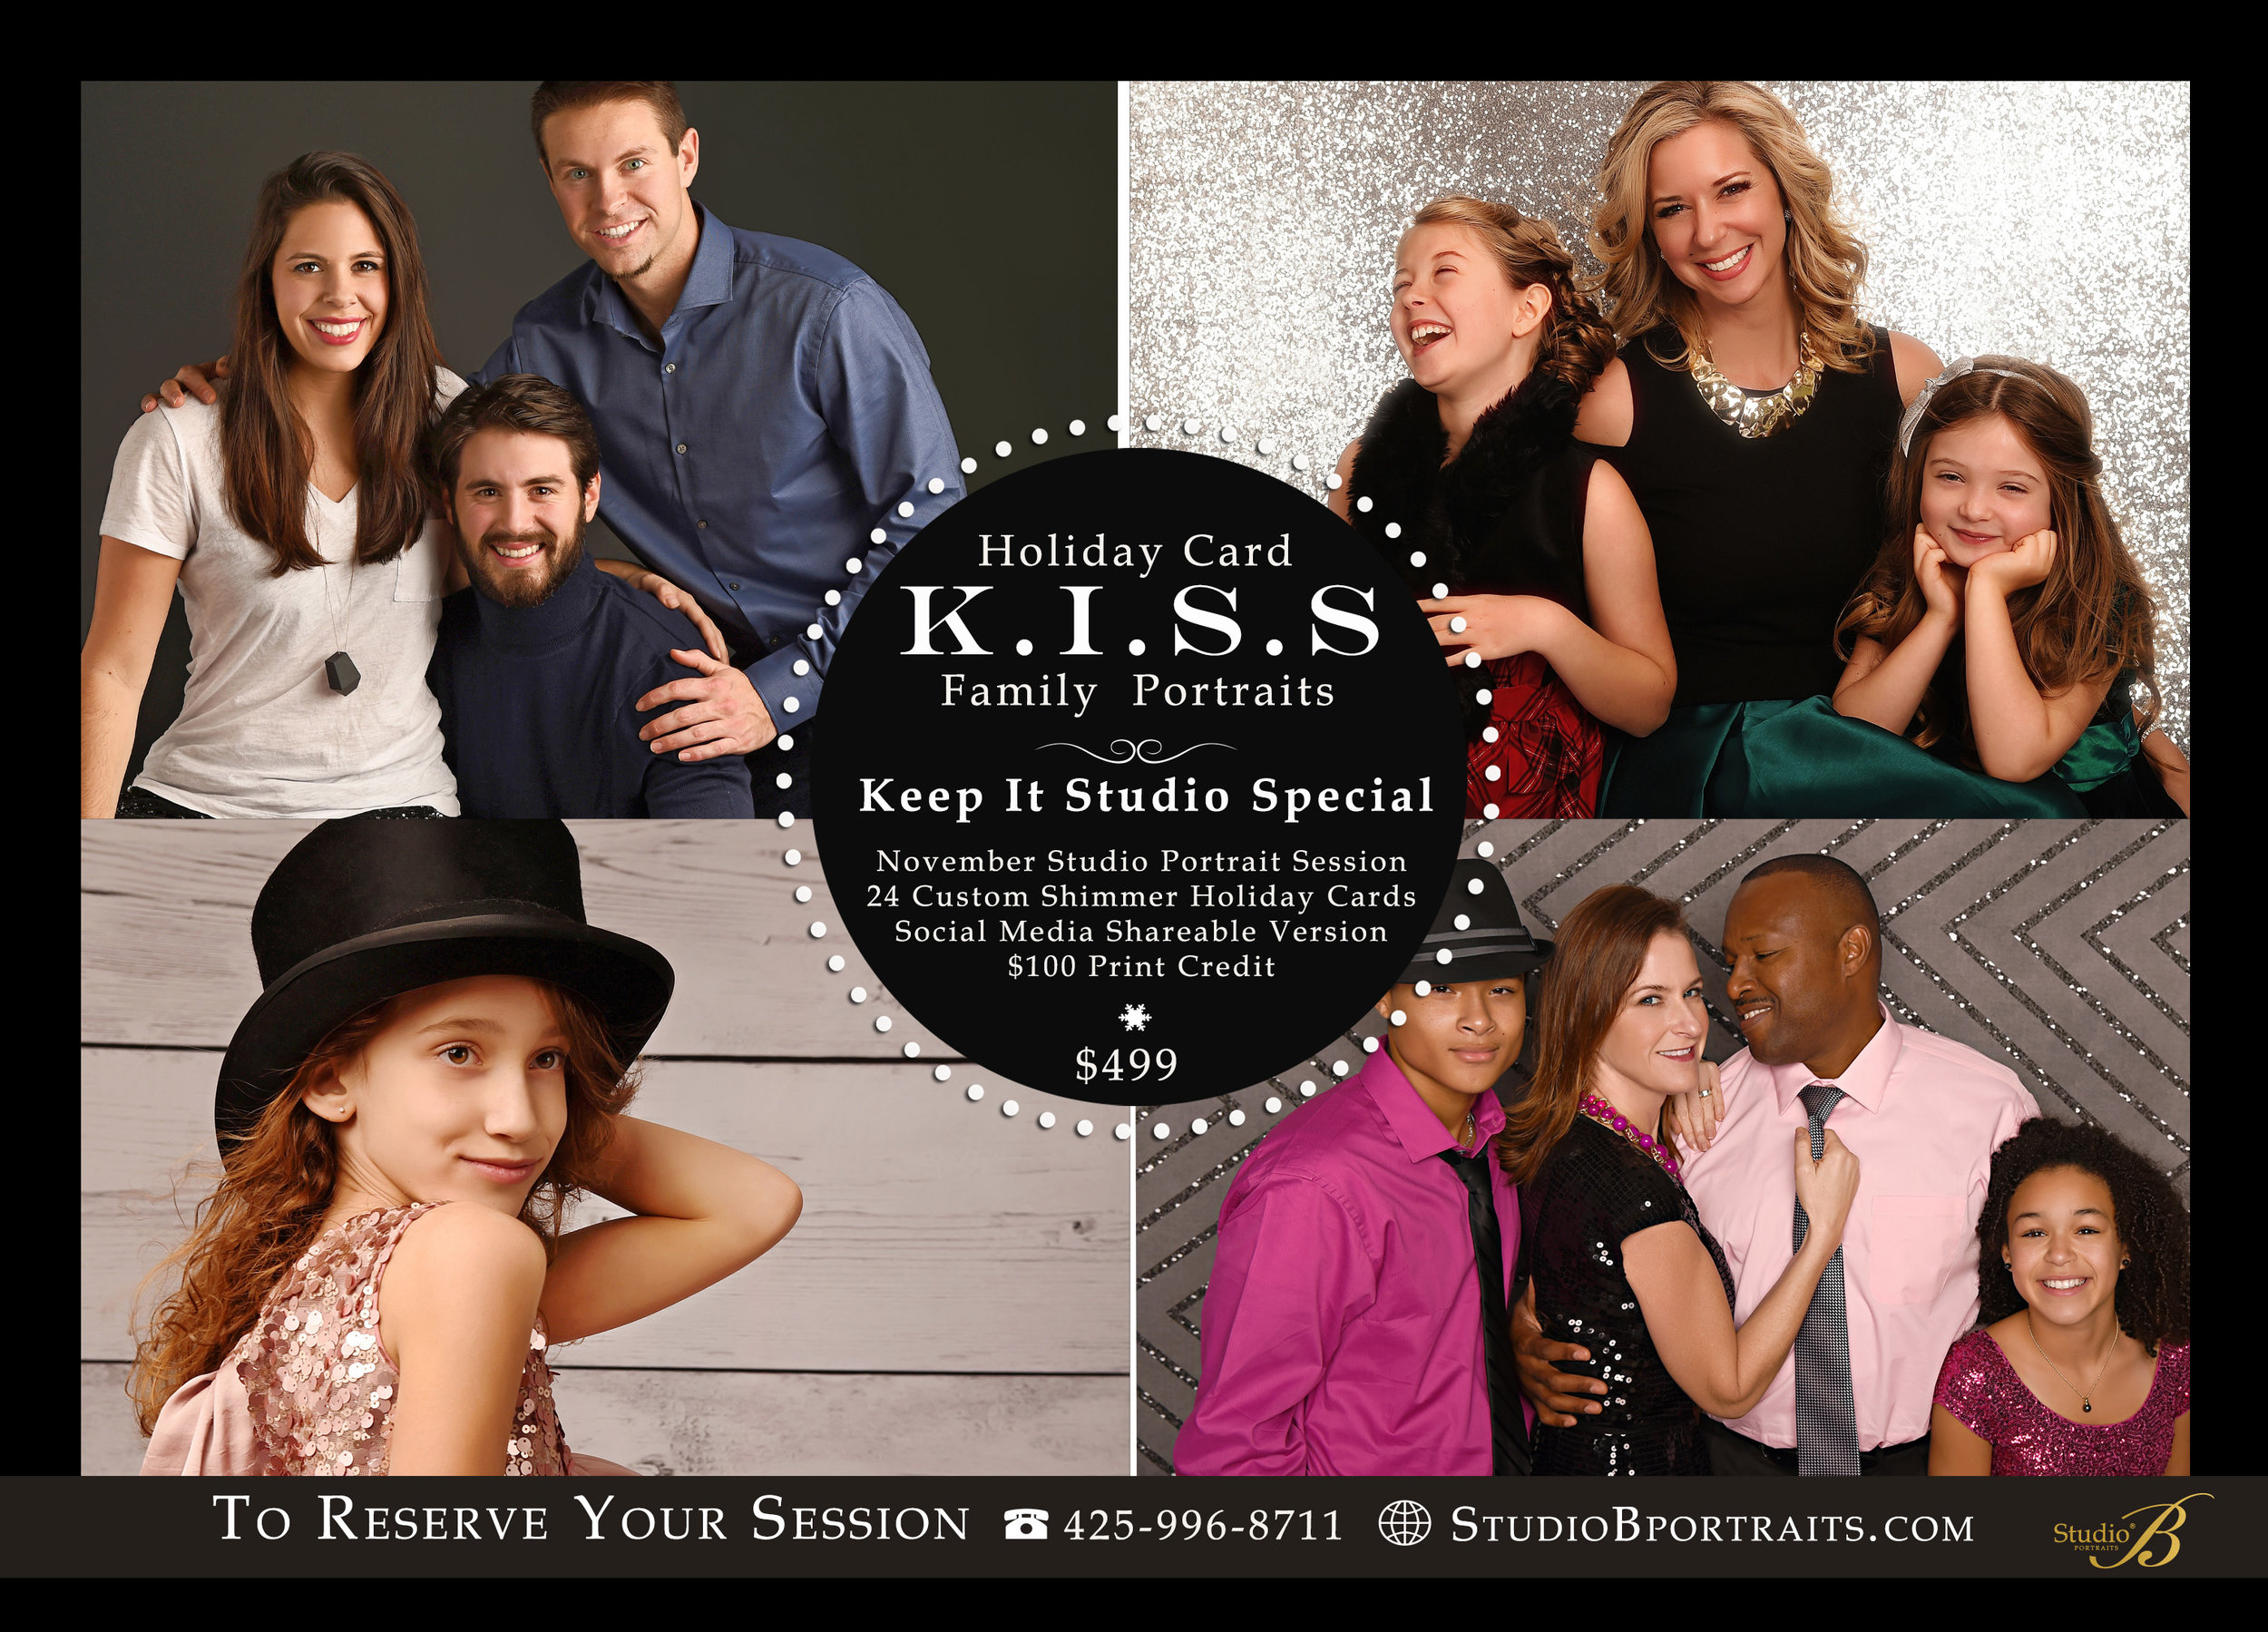 2017 Family Portrait Christmas Card Holiday Special_Keep It Studio Special_b.jpg